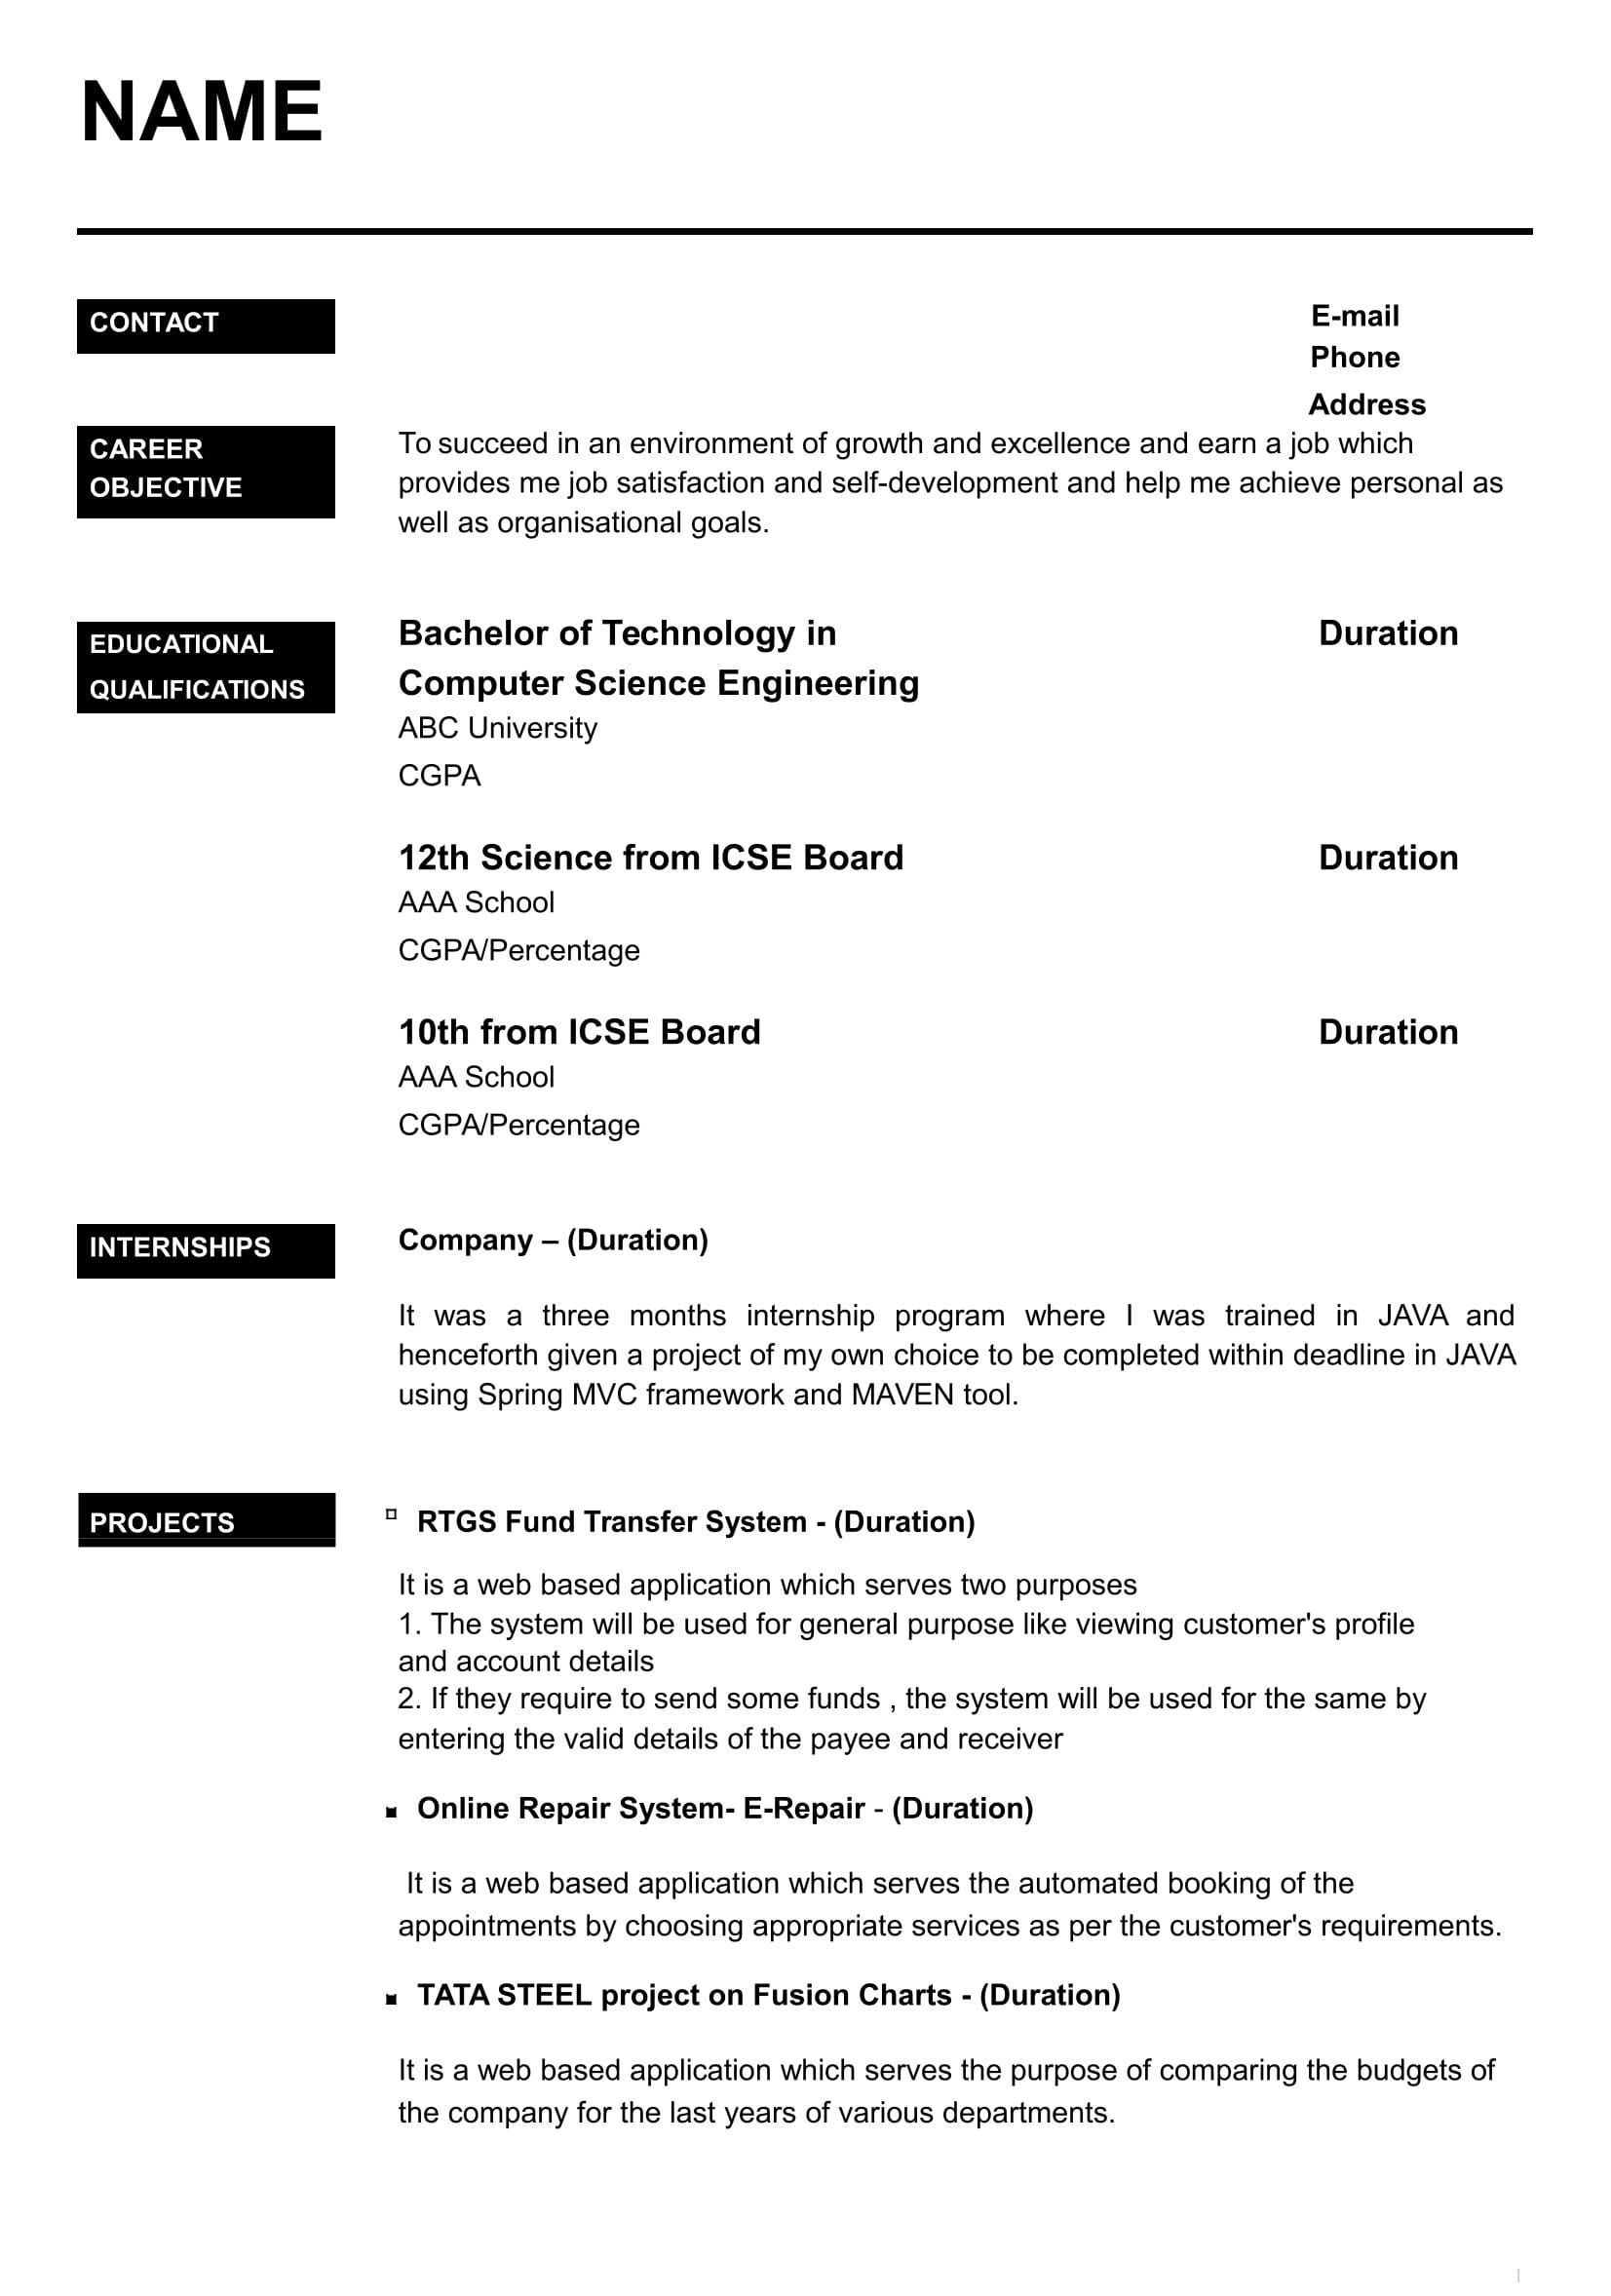 resume templates for freshers free word format awesome fo best simple examples principal Resume Resume Examples For Freshers